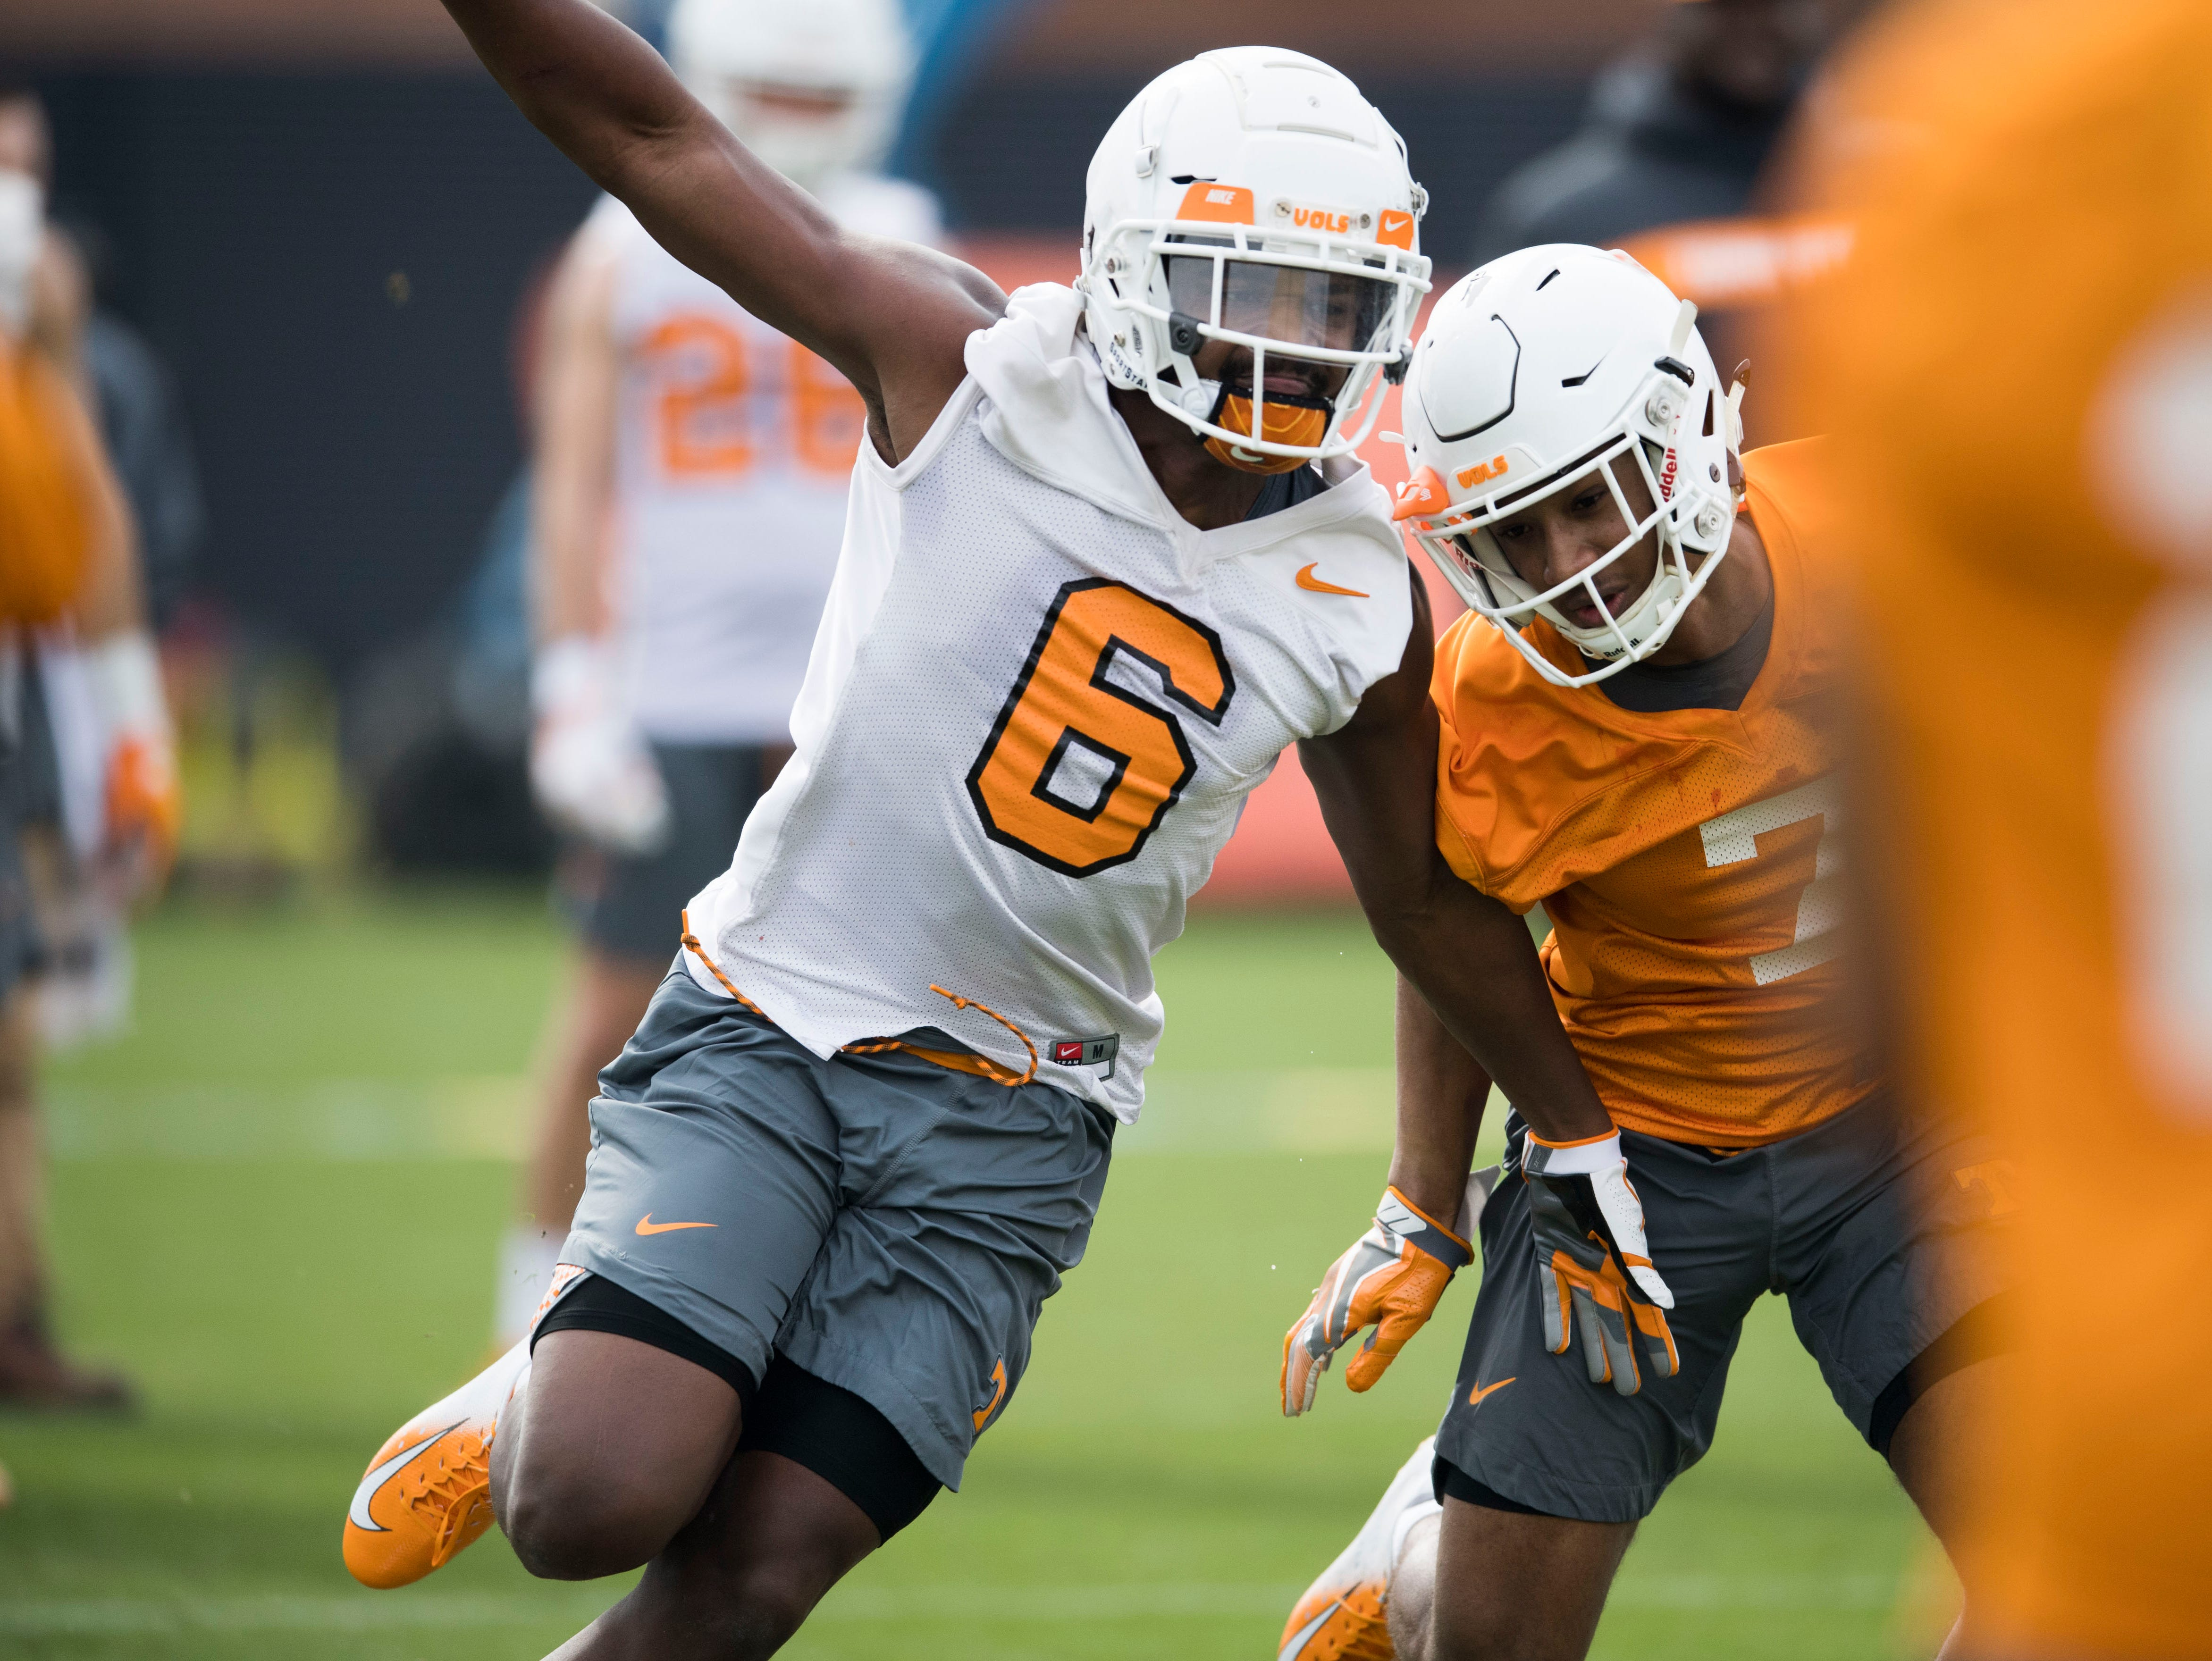 Tennessee's Deangelo Gibbs (6) participates in a drill during a Tennessee Vols football spring practice Saturday, March 9, 2019.